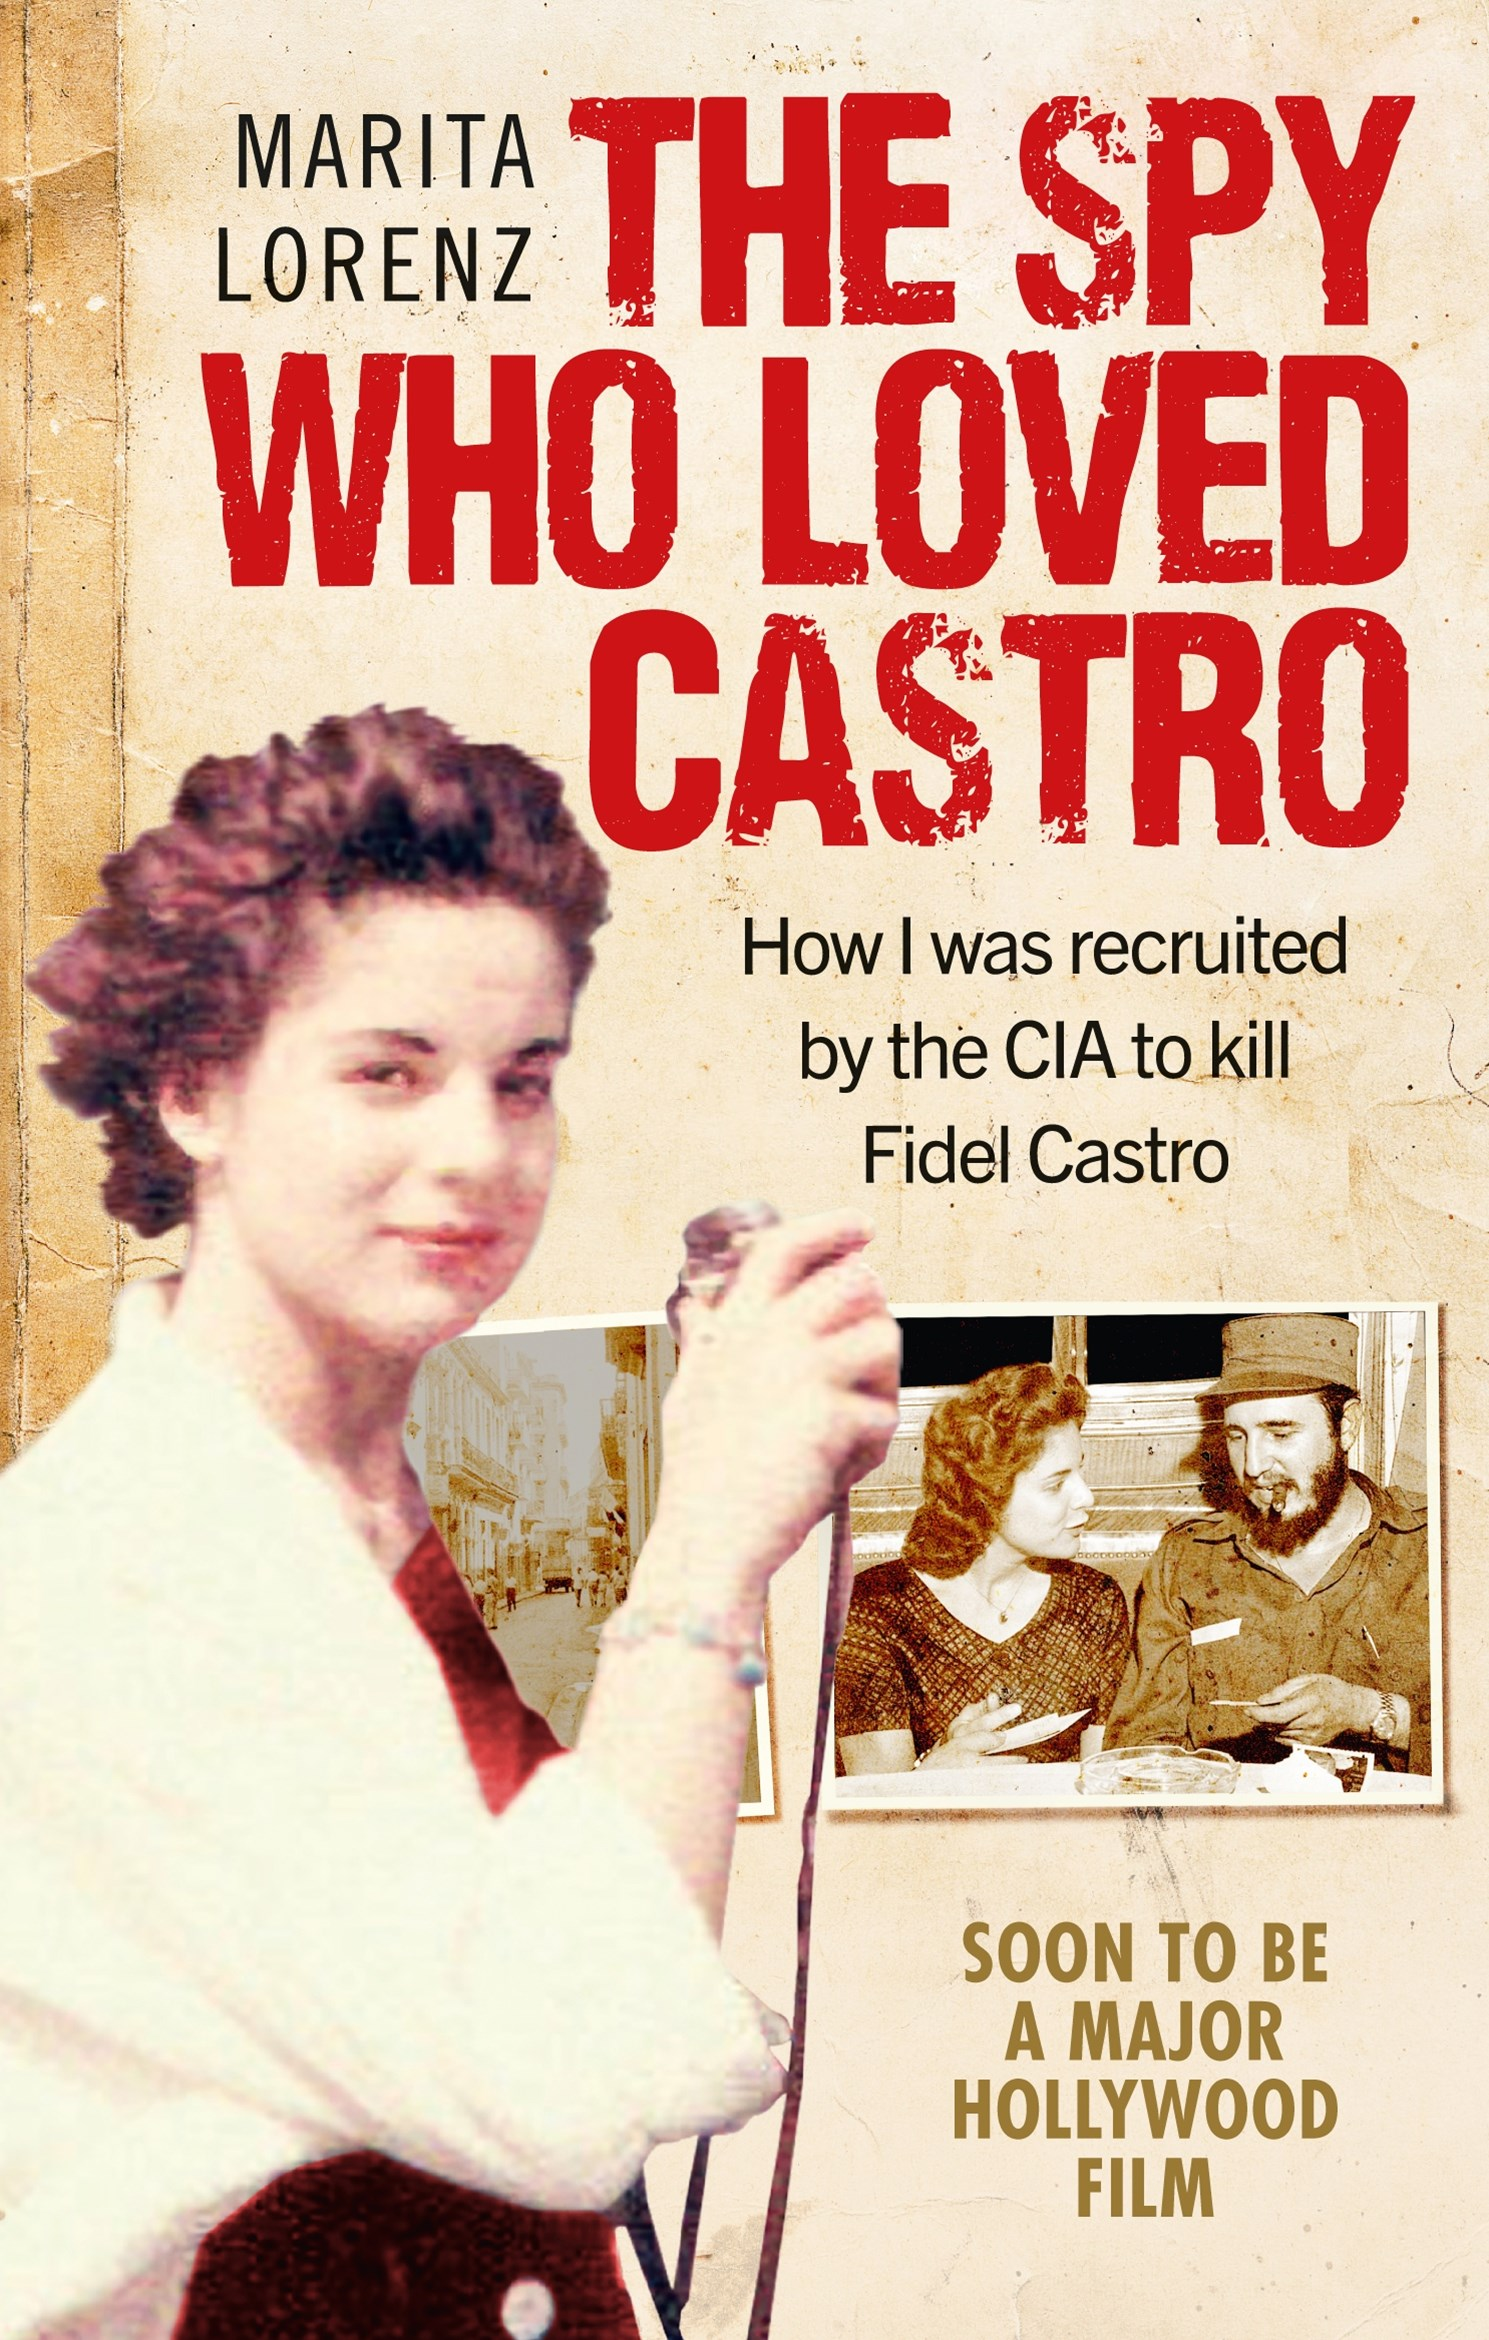 The Spy Who Loved Castro: How I was recruited by the CIA to kill Fidel Castro